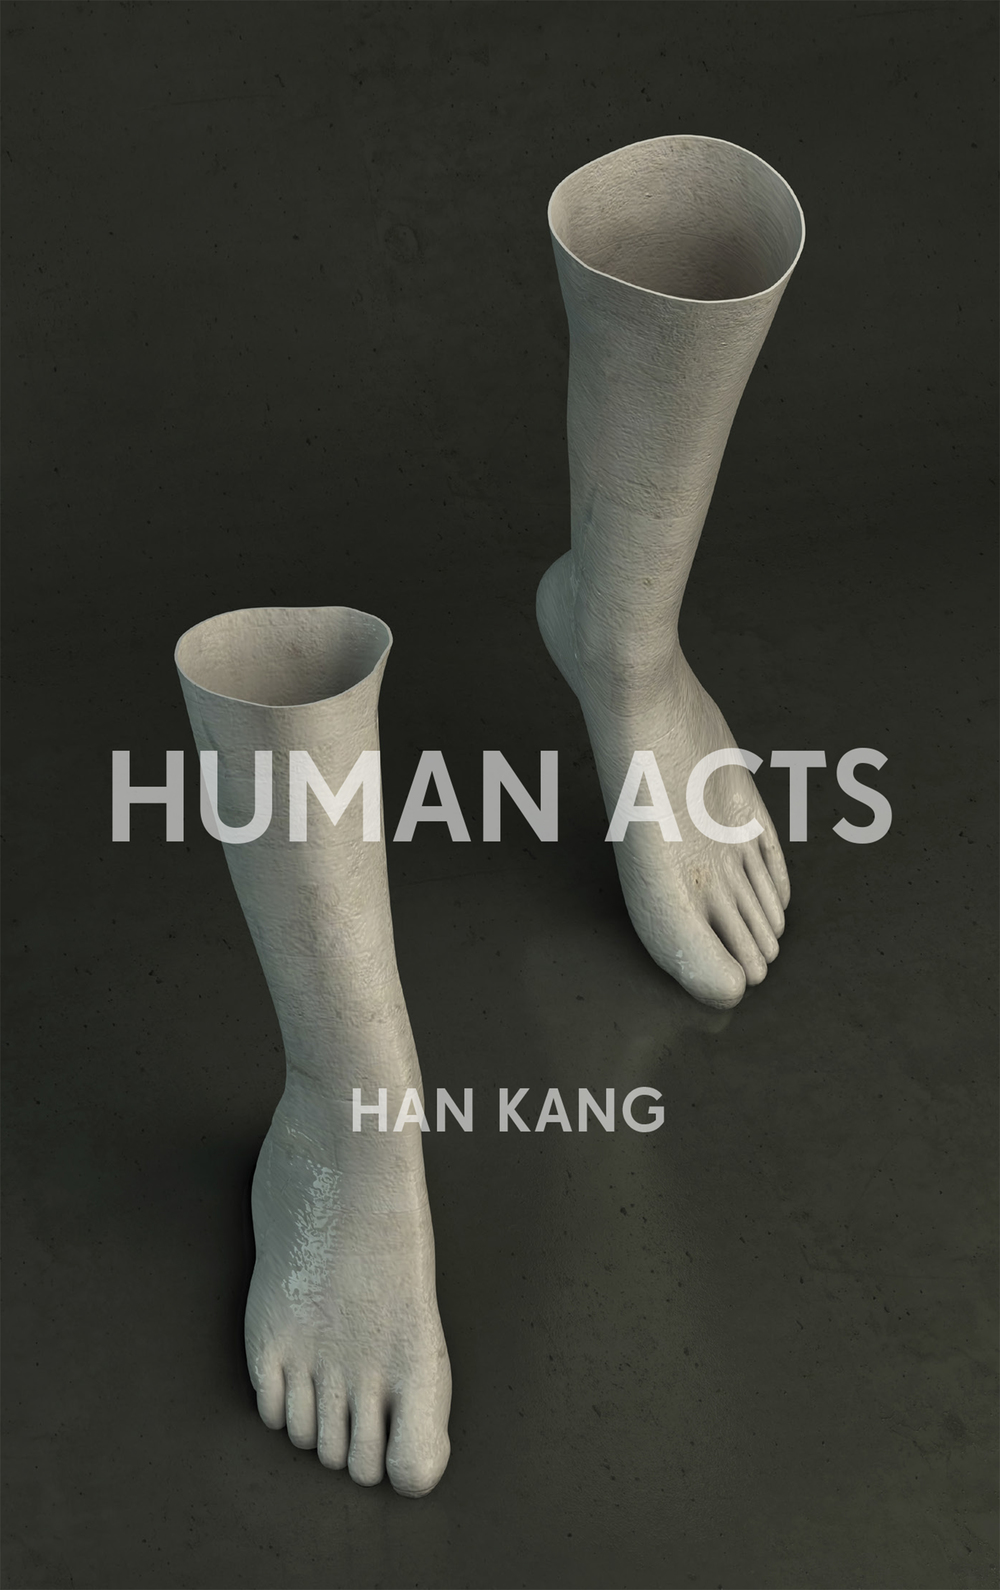 why han kang s human acts is likely to be my book of the year why han kang s human acts is likely to be my book of the year